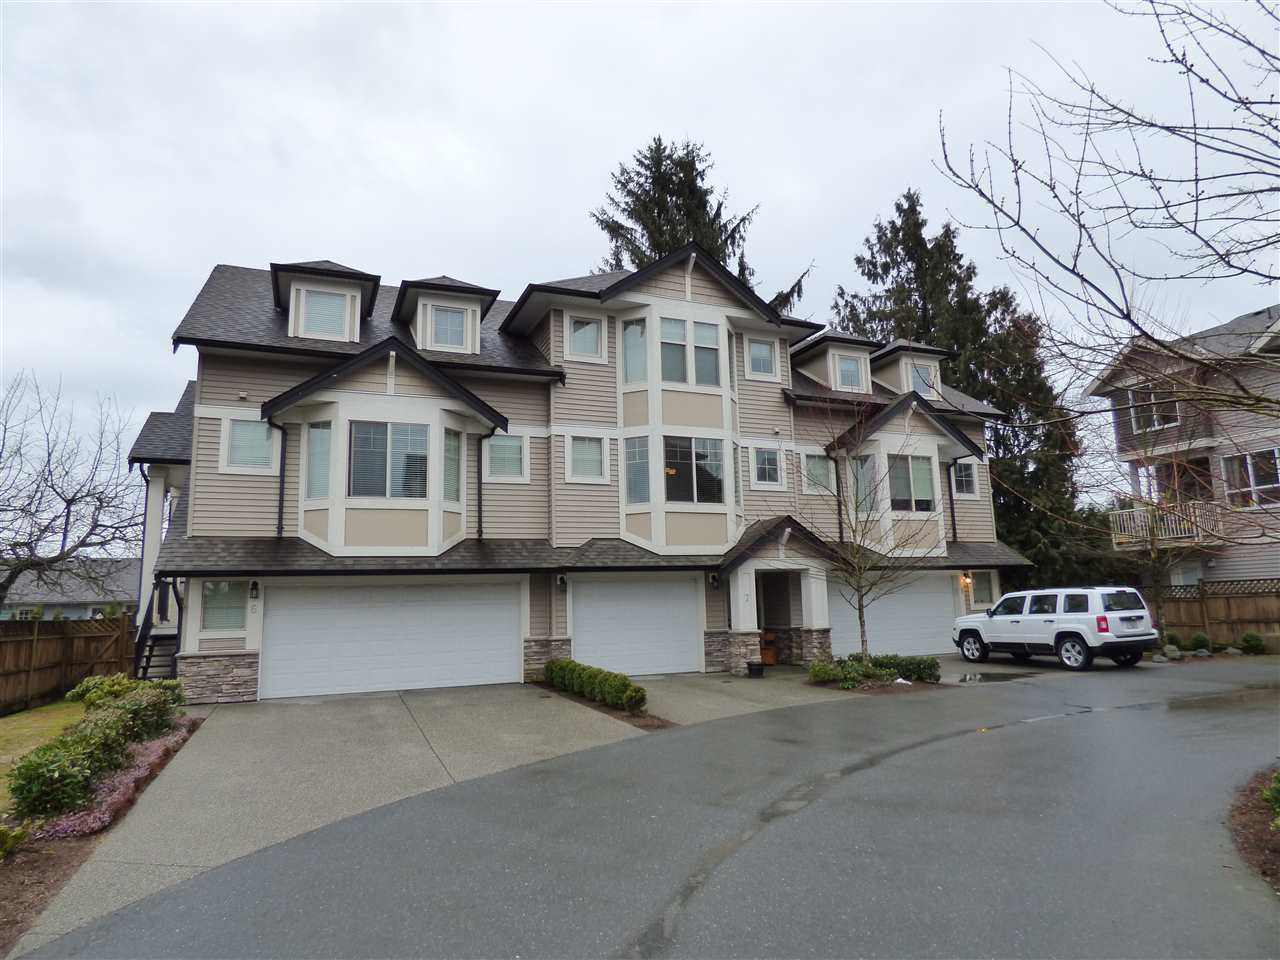 Main Photo: 7 9280 BROADWAY STREET in Chilliwack: Chilliwack E Young-Yale Townhouse for sale : MLS(r) # R2143136